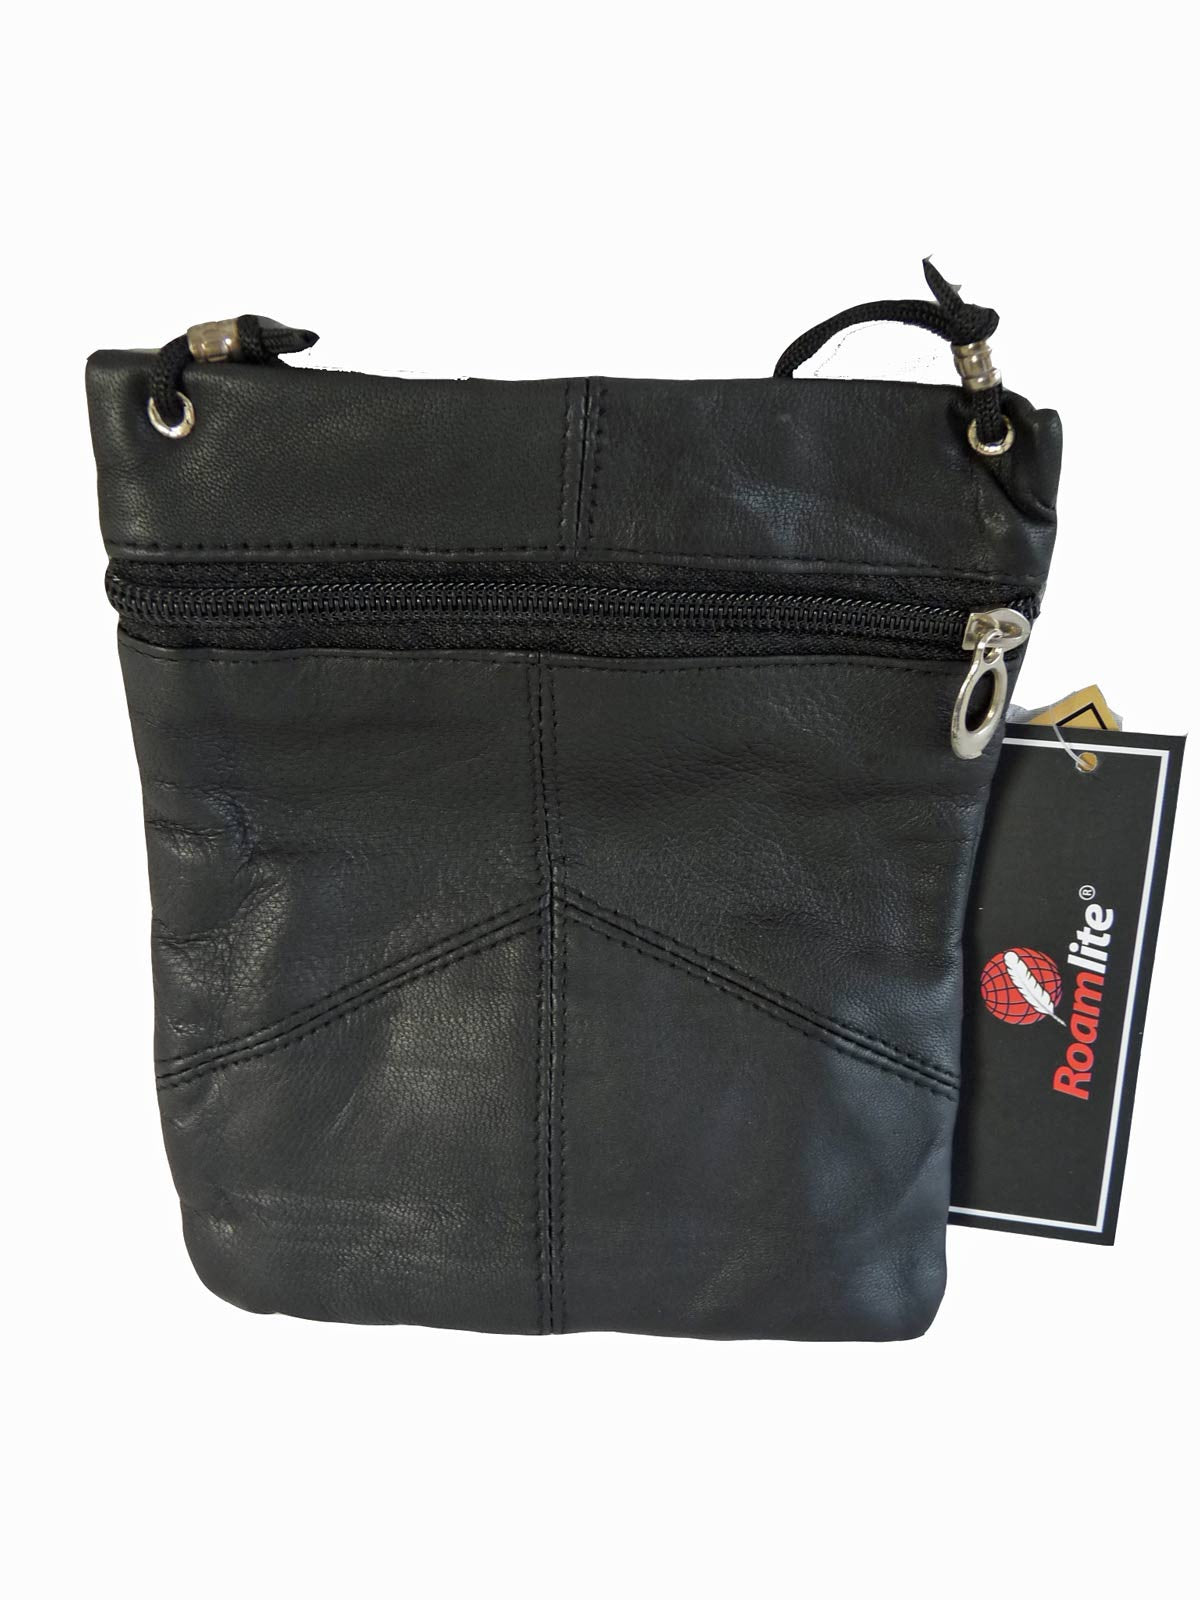 Leather Neck Pouch RL130 Black Rear View